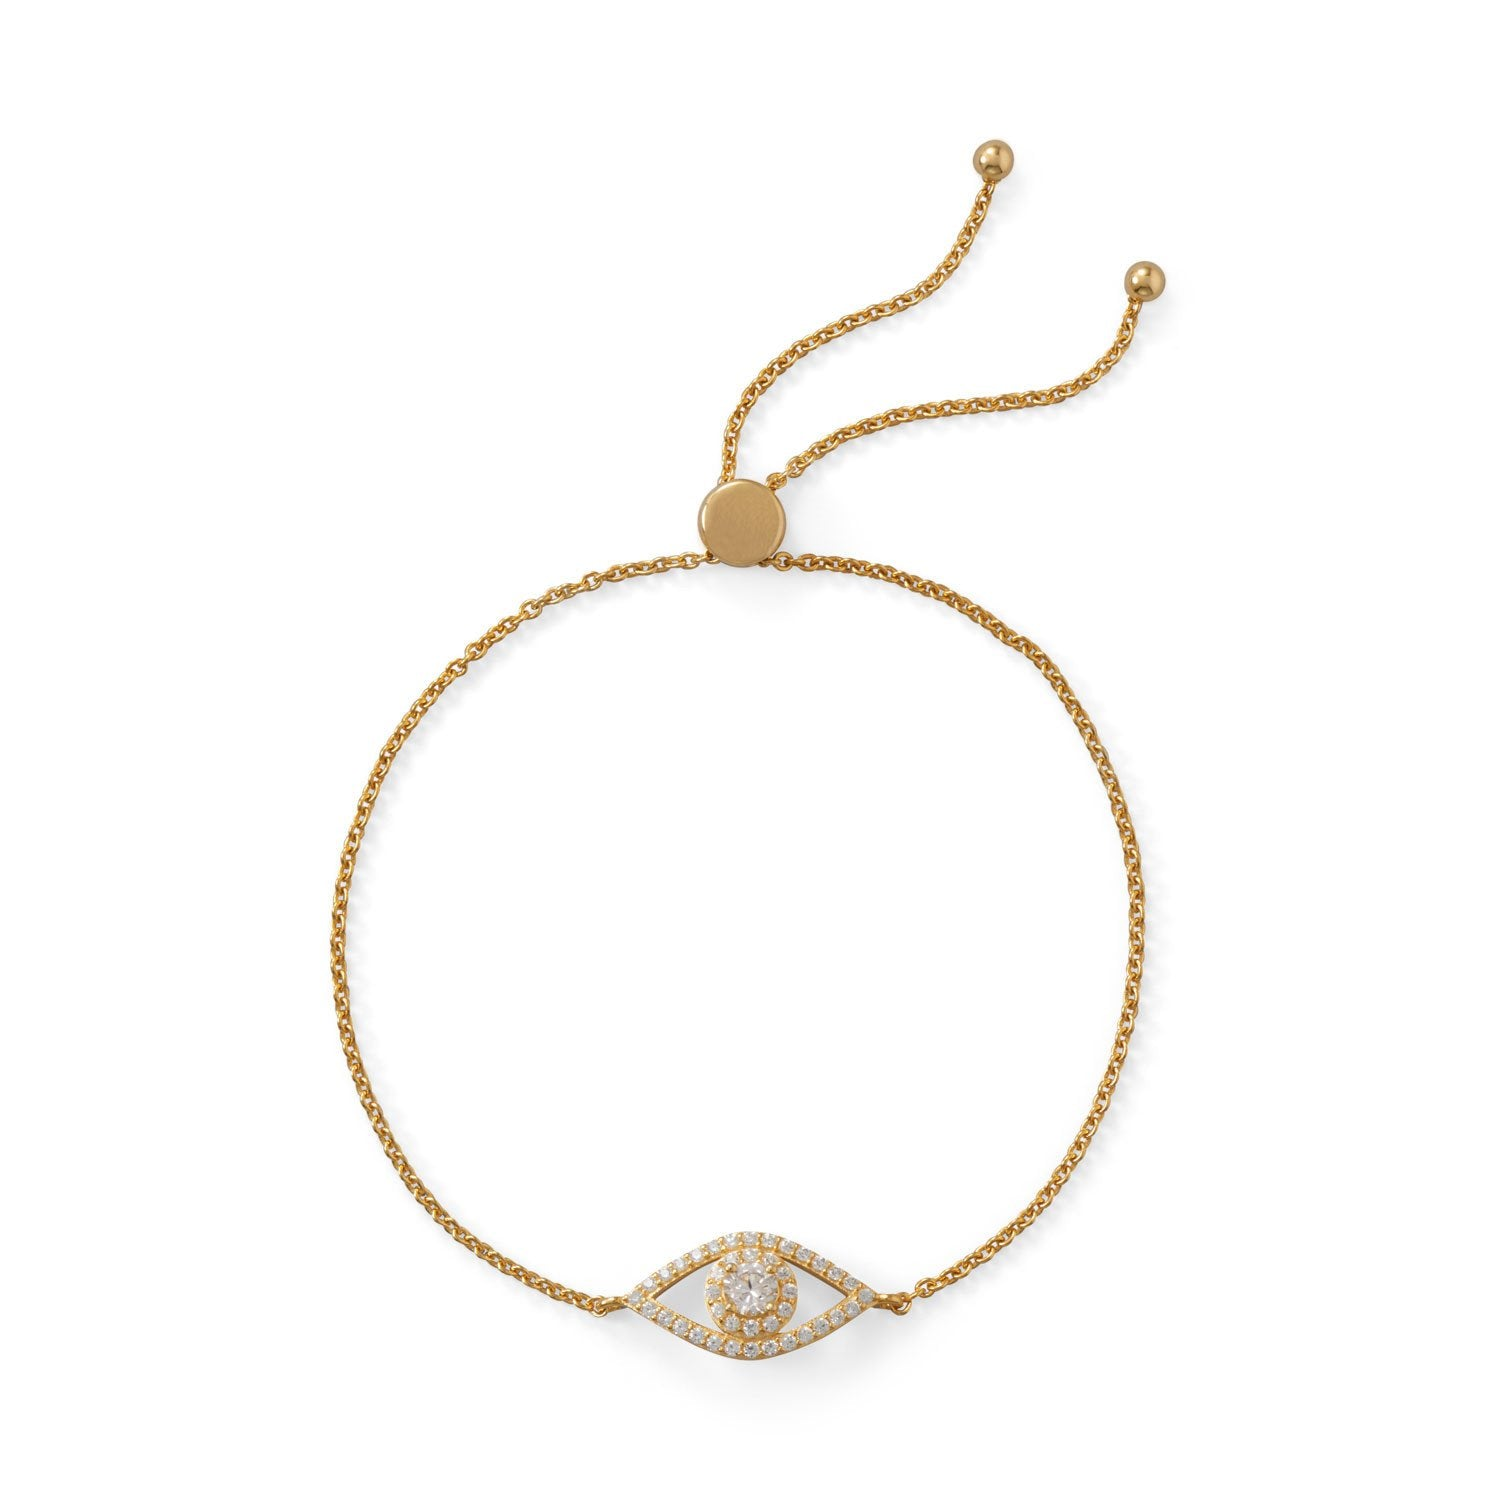 Gold Plated CZ Evil Eye Friendship Bolo Bracelet - the-southern-magnolia-too